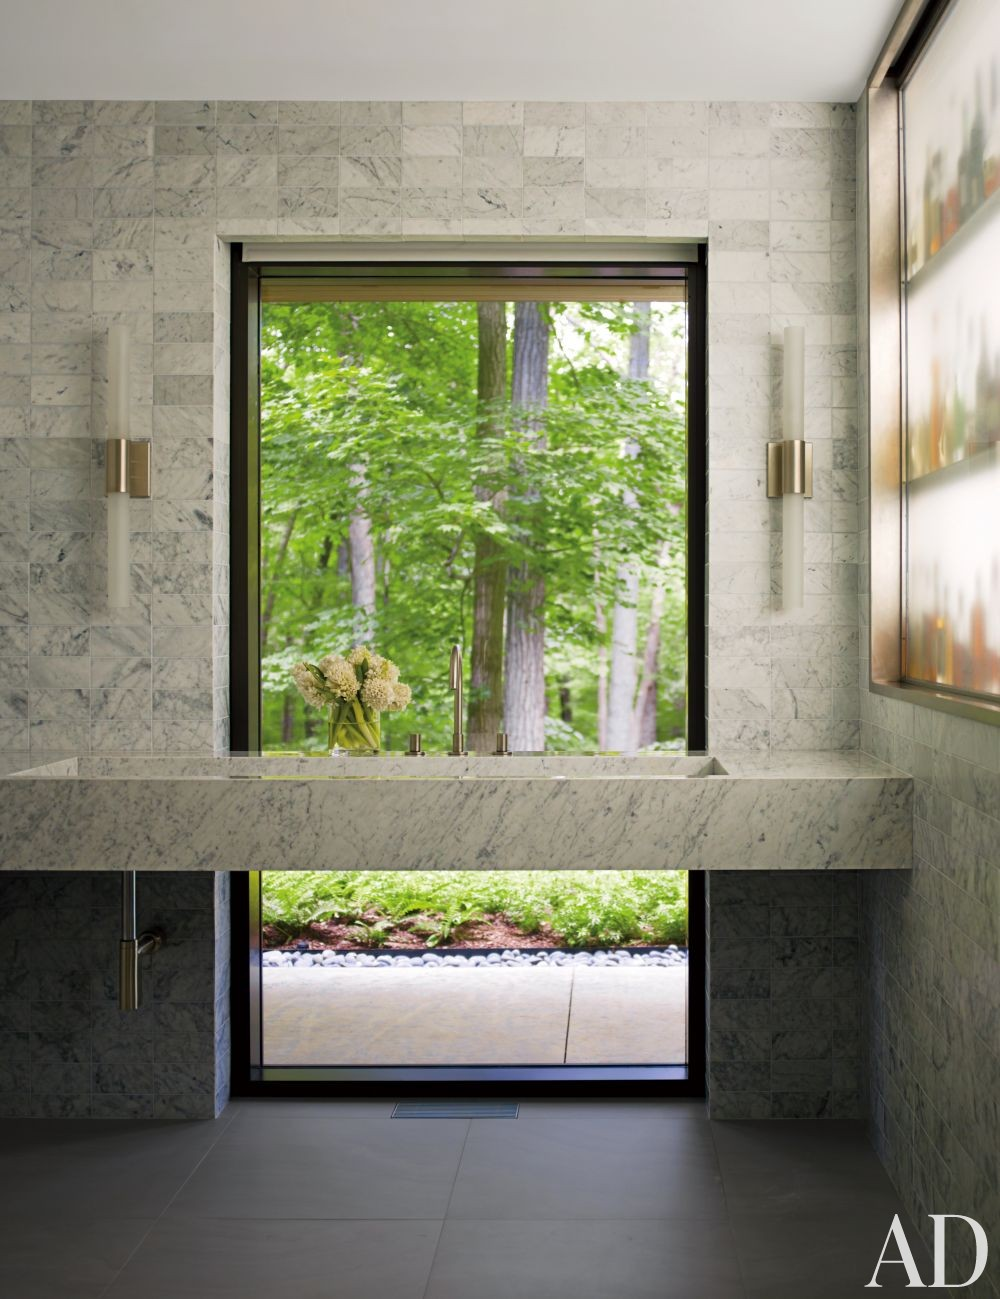 Modern Bathroom by Carrier and Co. Interiors and Specht Harpman Architects in New Canaan, Connecticut